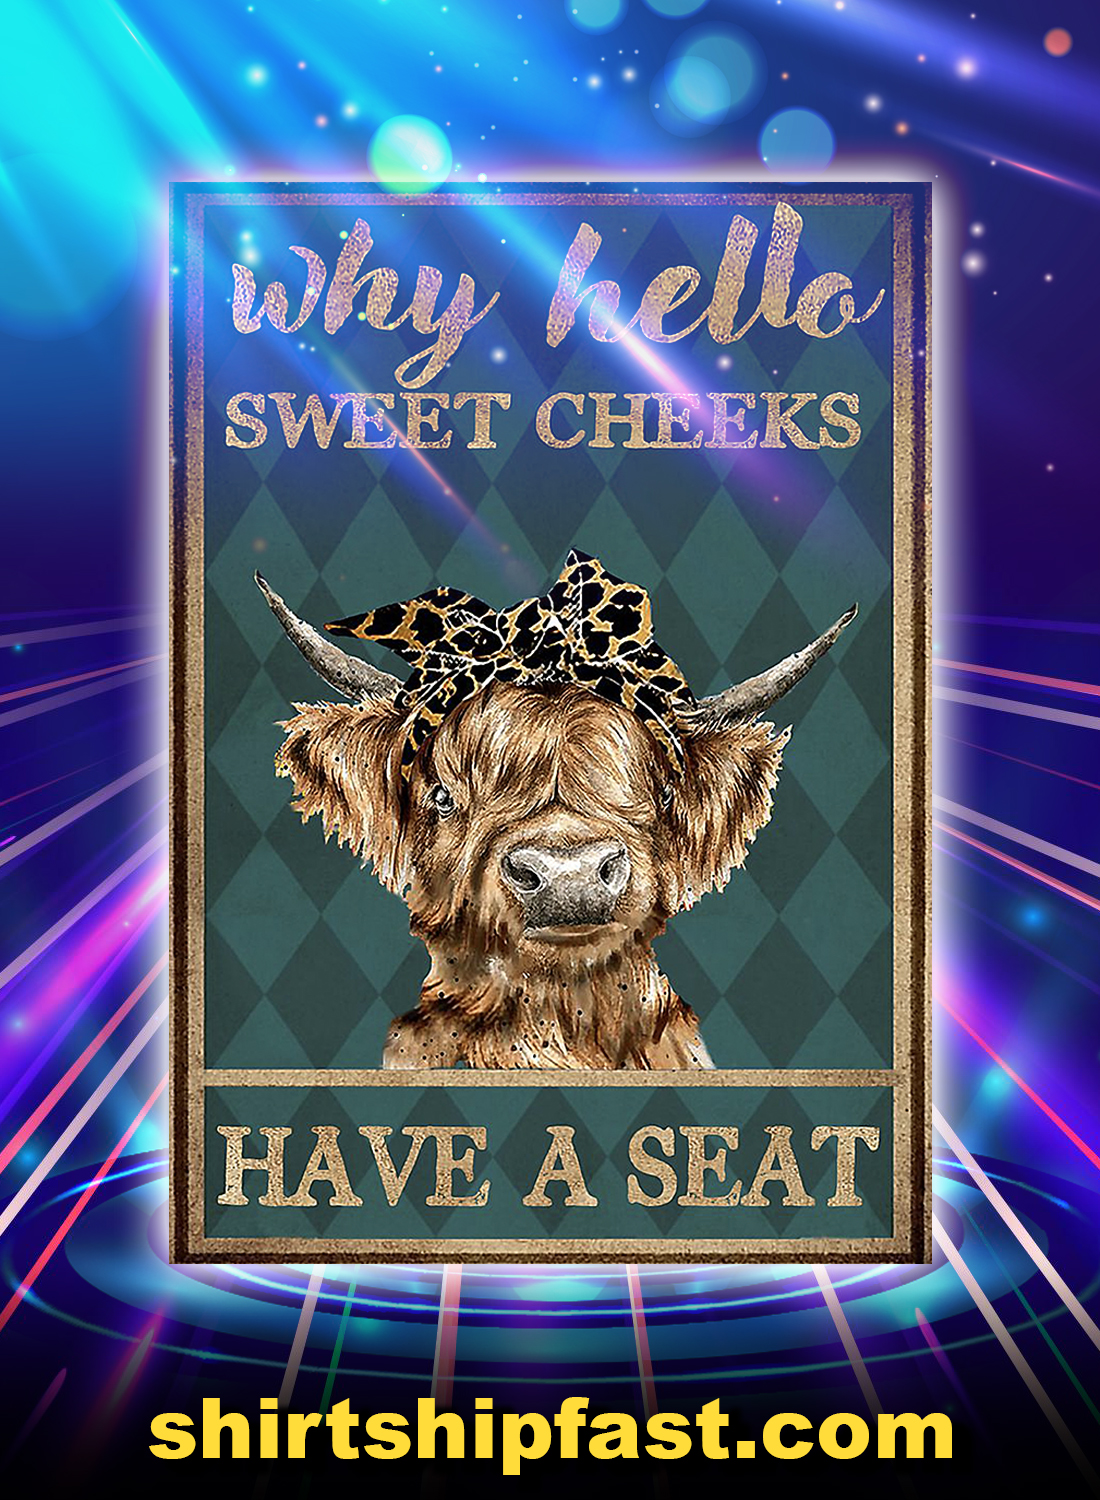 Why hello sweet cheeks have a seat cow highland cattle poster - A4